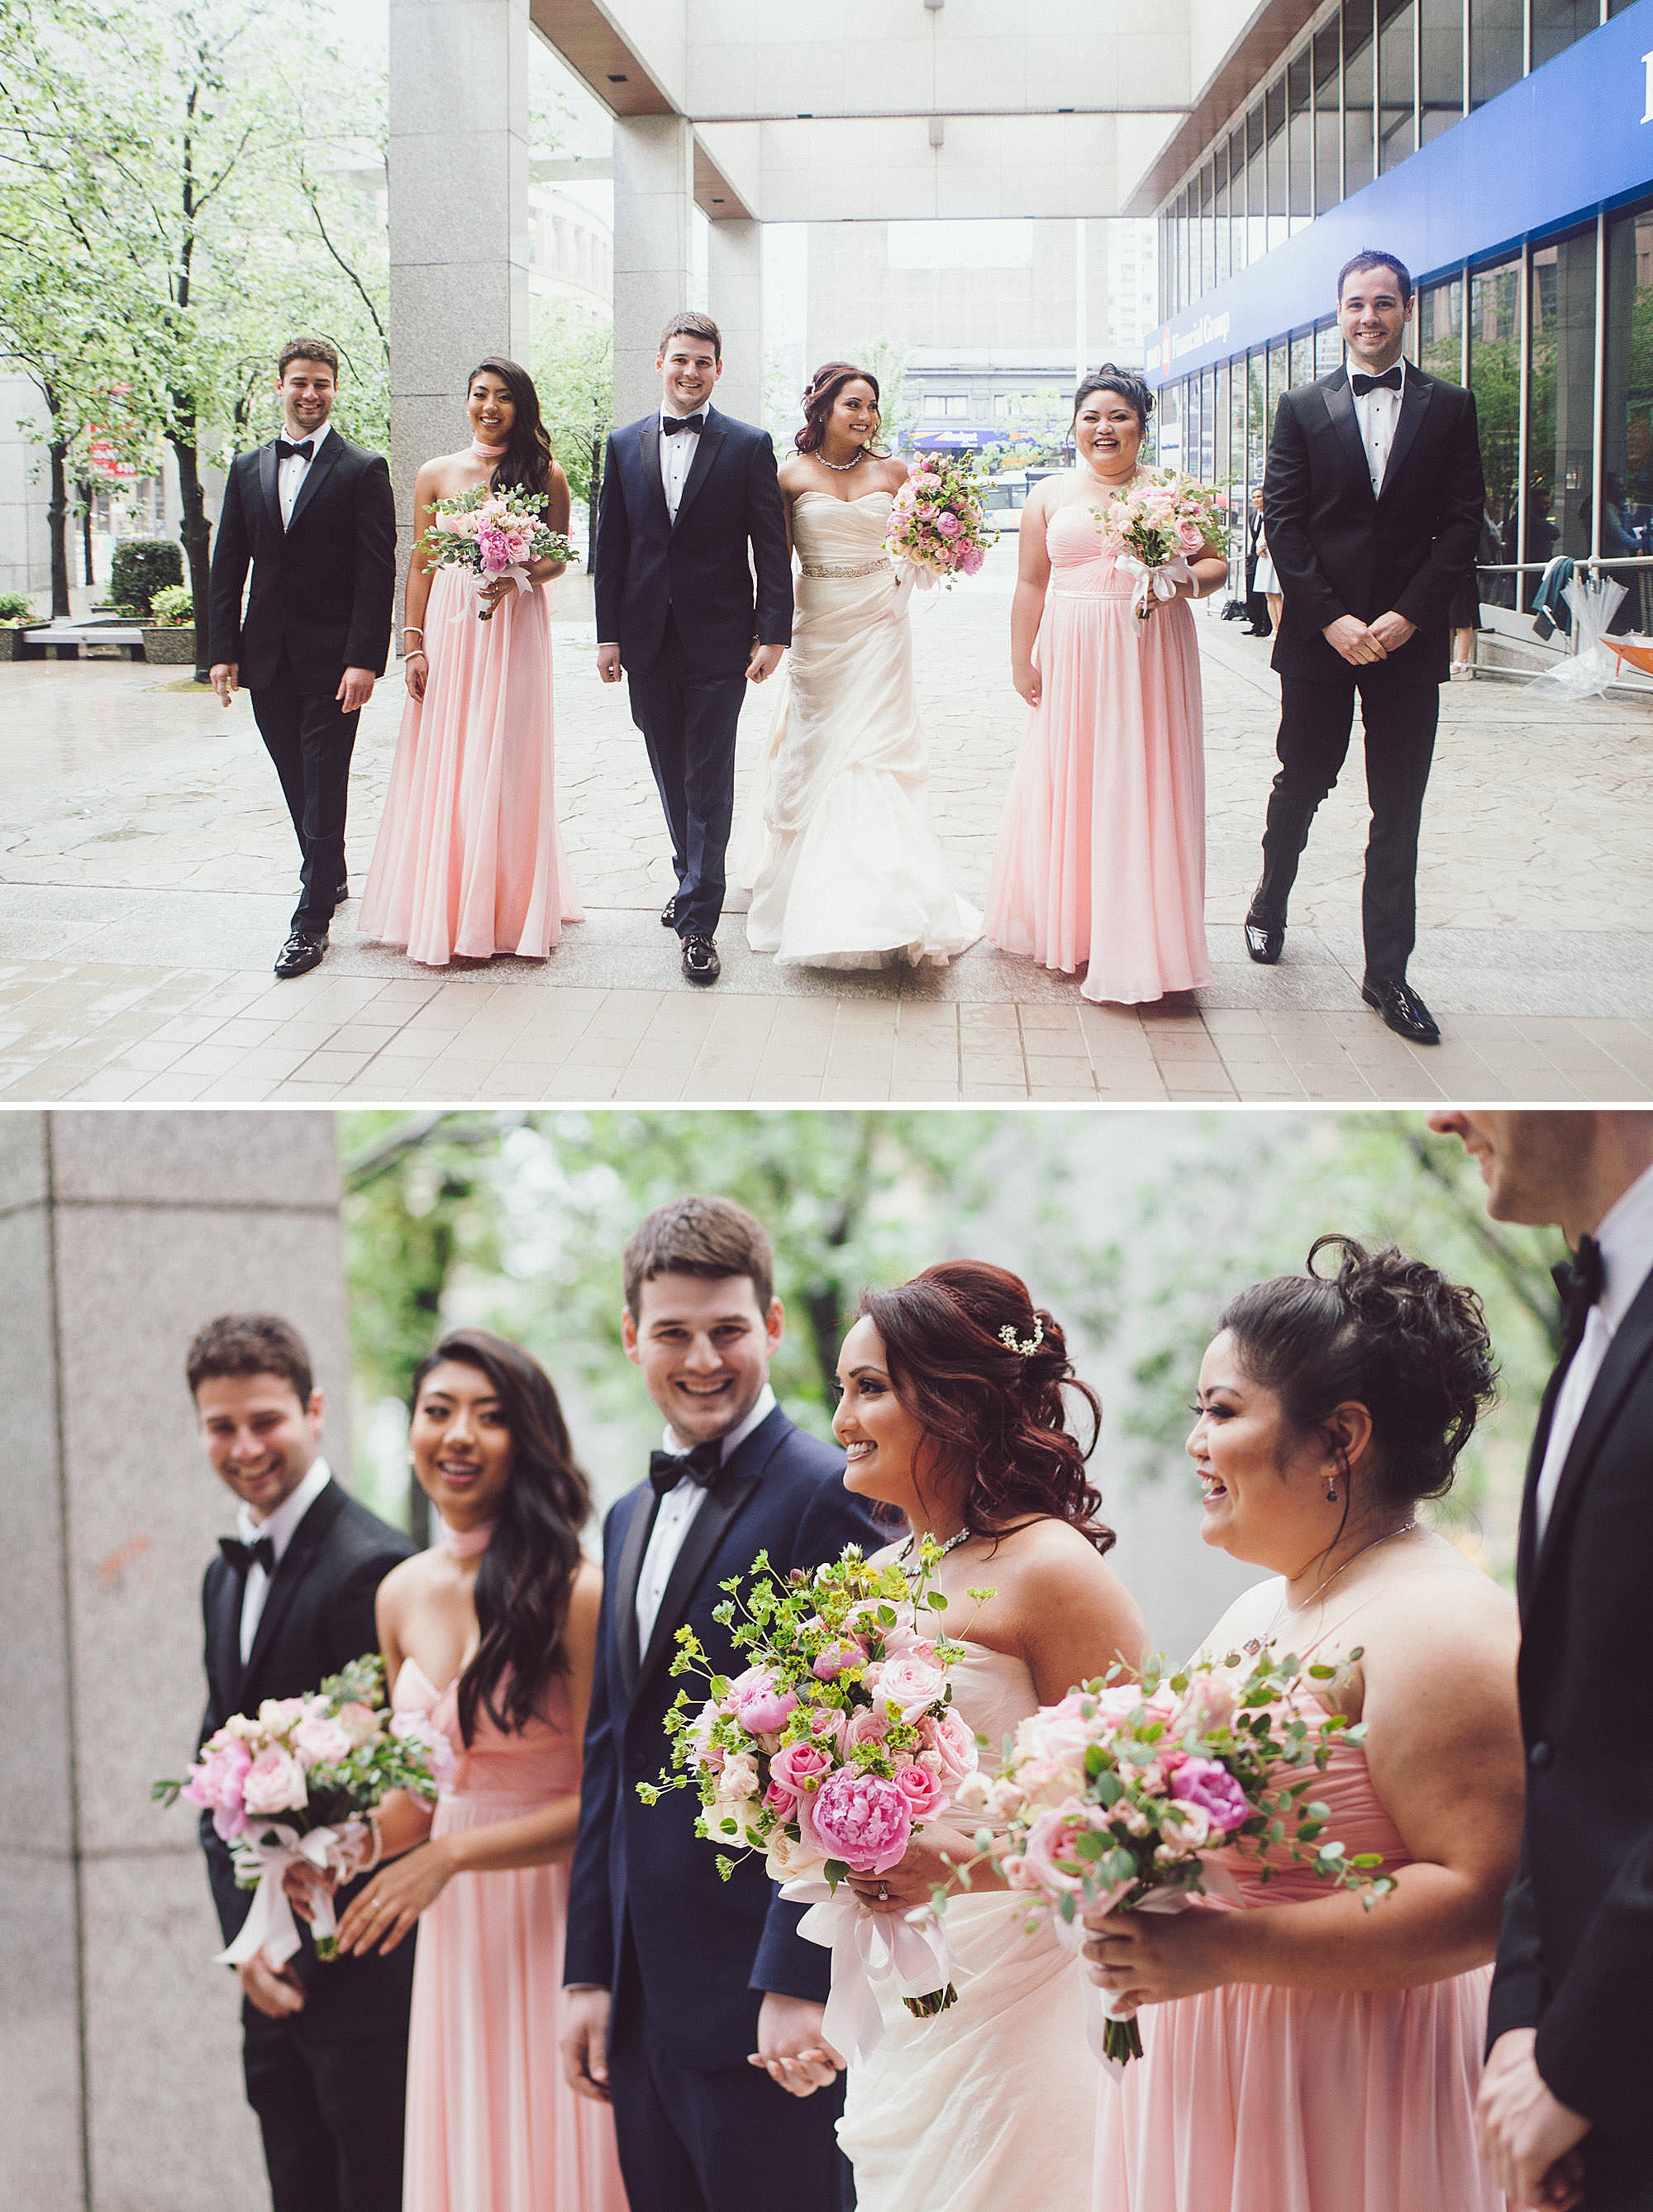 Wedding party poses for photos